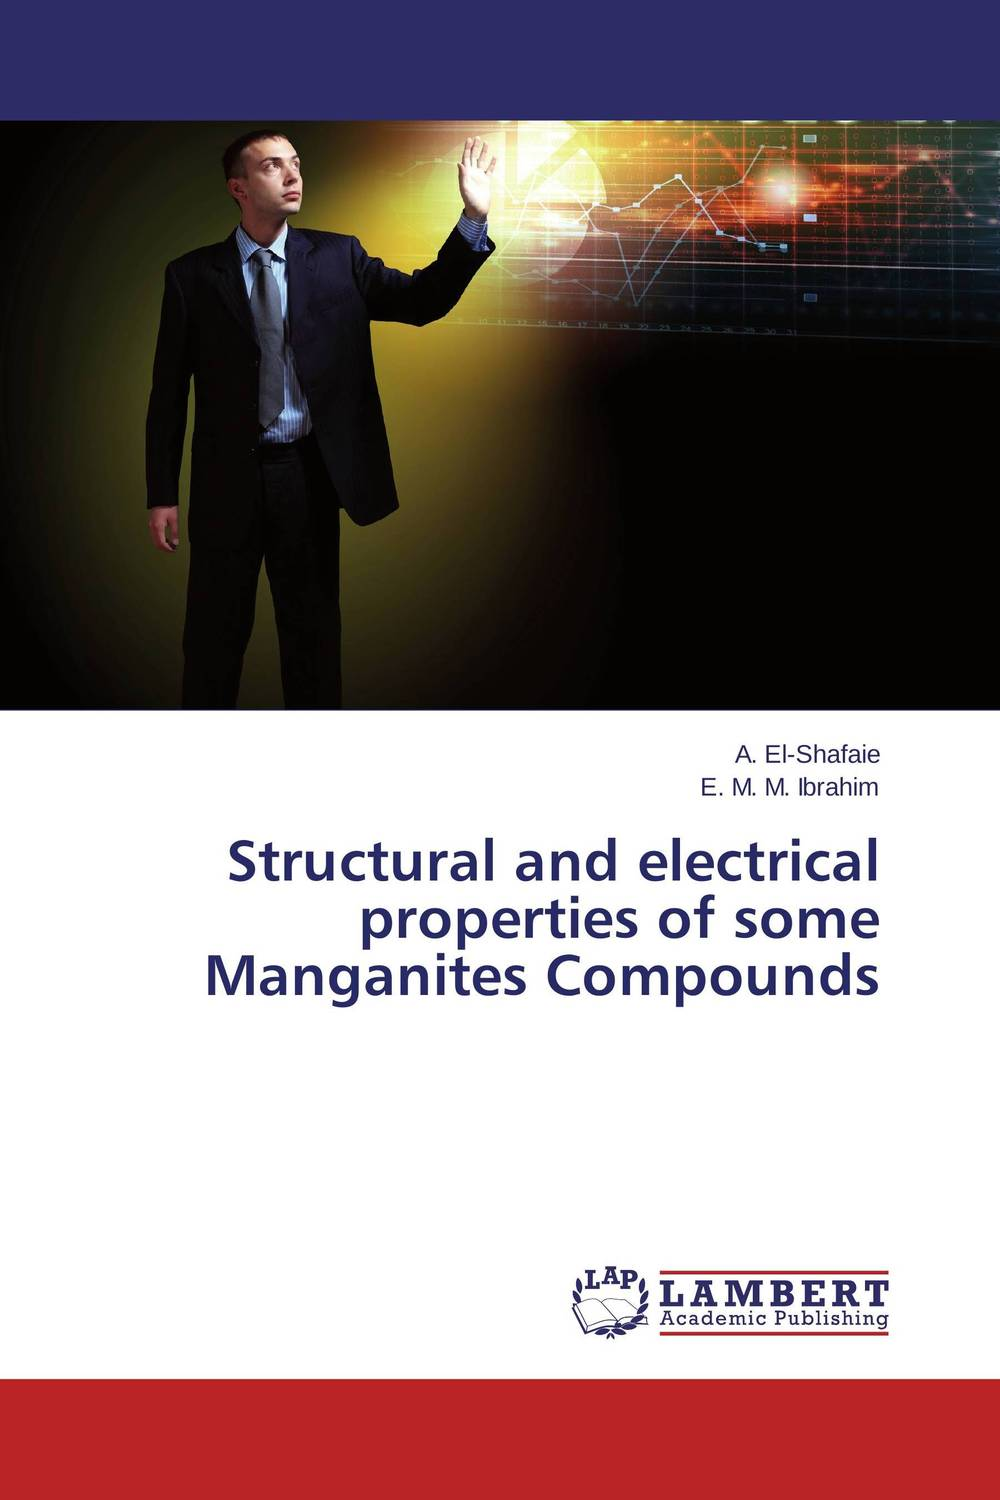 Structural and electrical properties of some Manganites Compounds